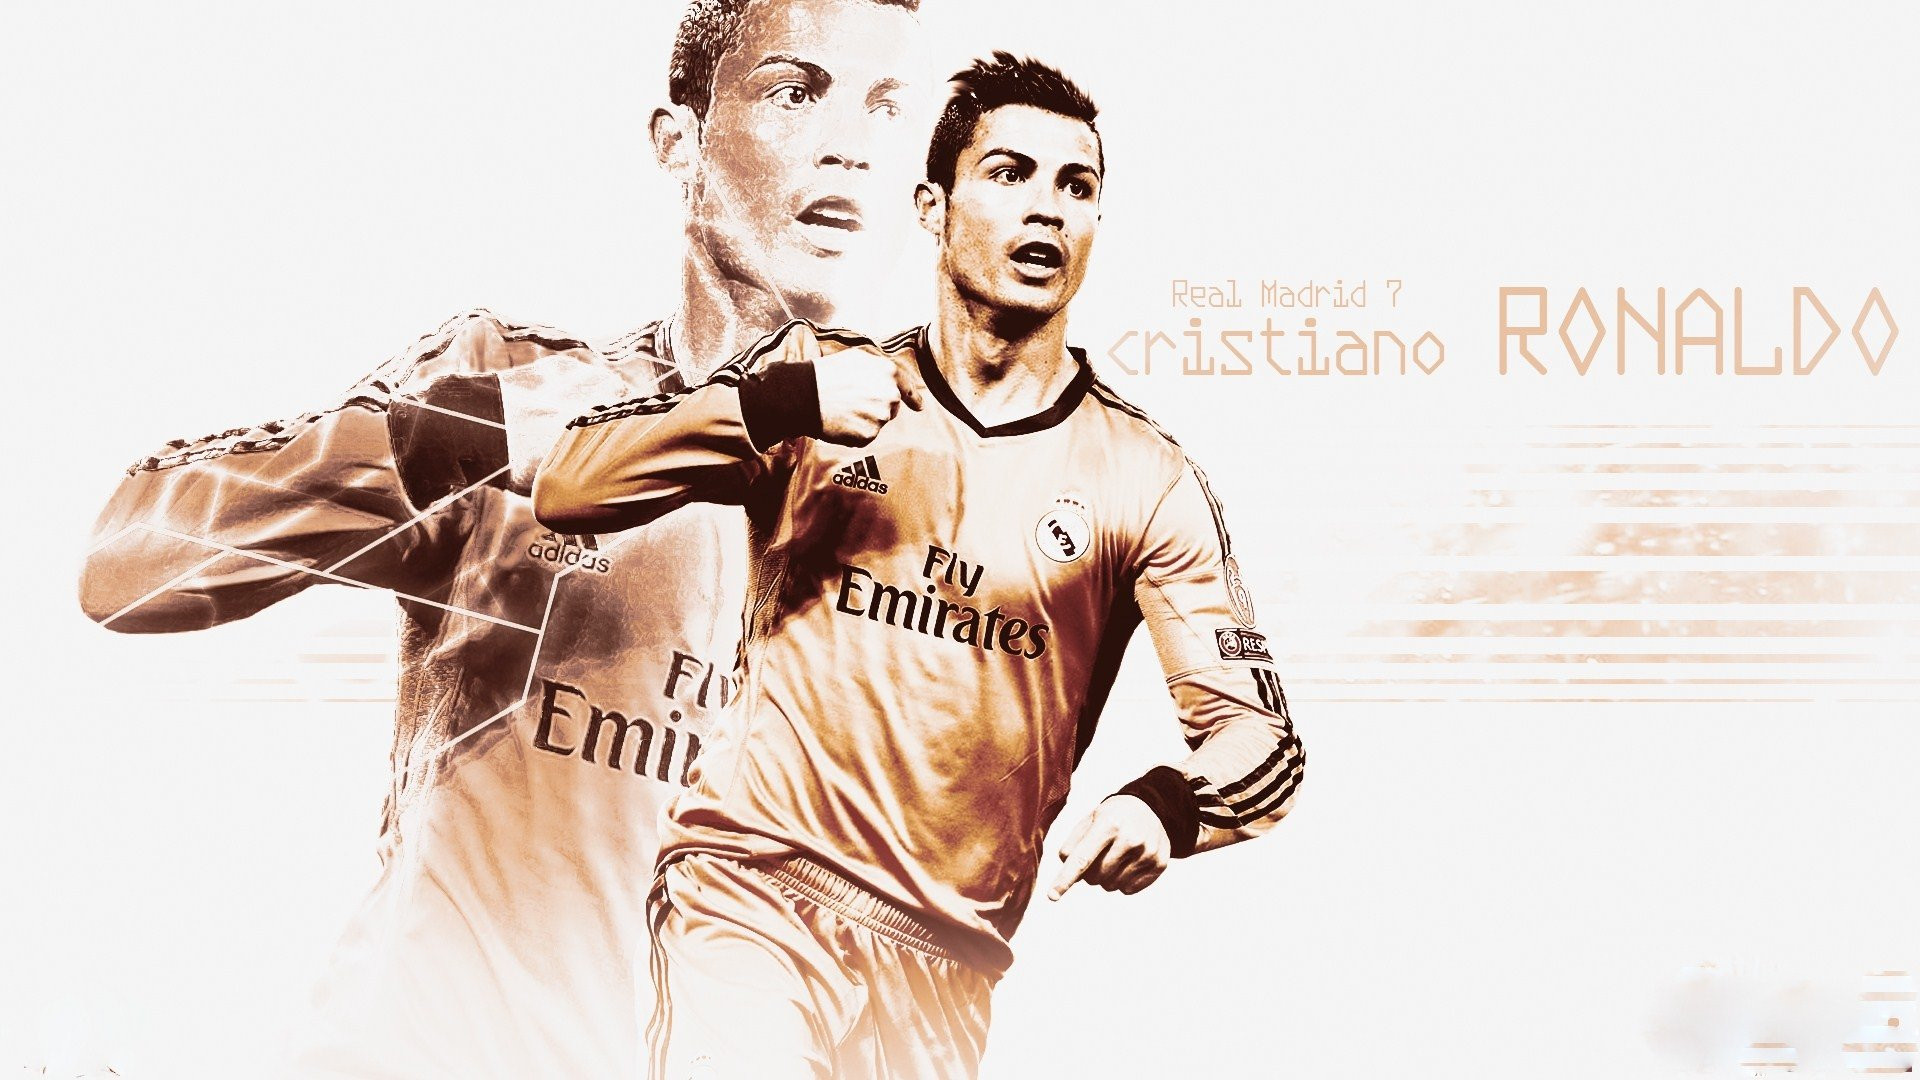 1920x1080 cristiano ronaldo wallpaper hd 59 cristiano ronaldo hd wallpapers